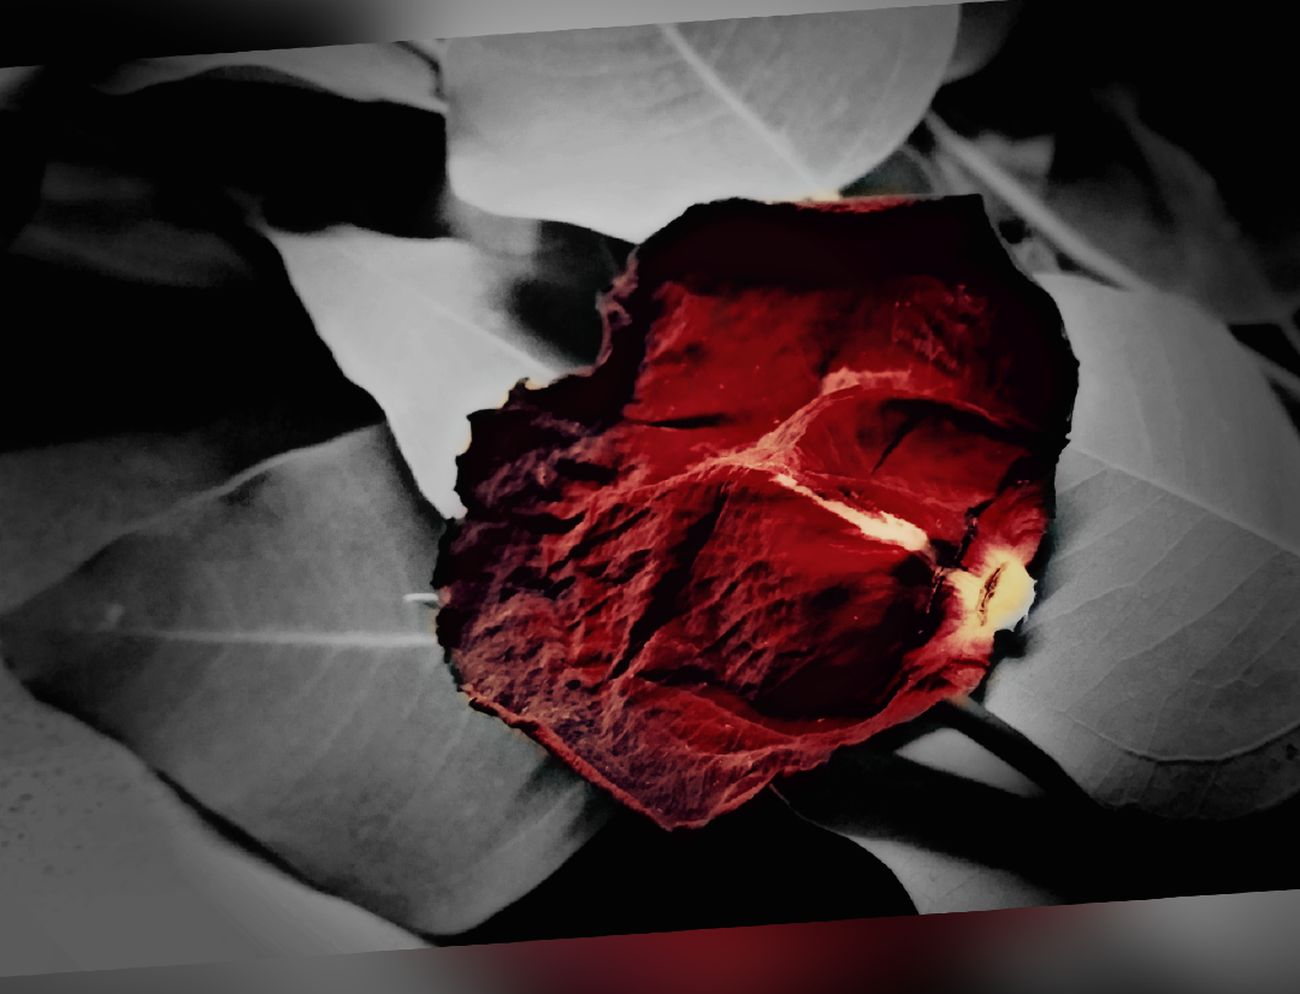 Bleeding Red Leaf Veins Free Falling No People AMPt - Still Life (Nature Morte) StillLifePhotography OneLove The Sound Of Silence Creative Editing Black And White With A Splash Of Colour EyeEm Bnw For The Love Of Black And White Beauty Is In The Eye Of The Beholder FocusOn